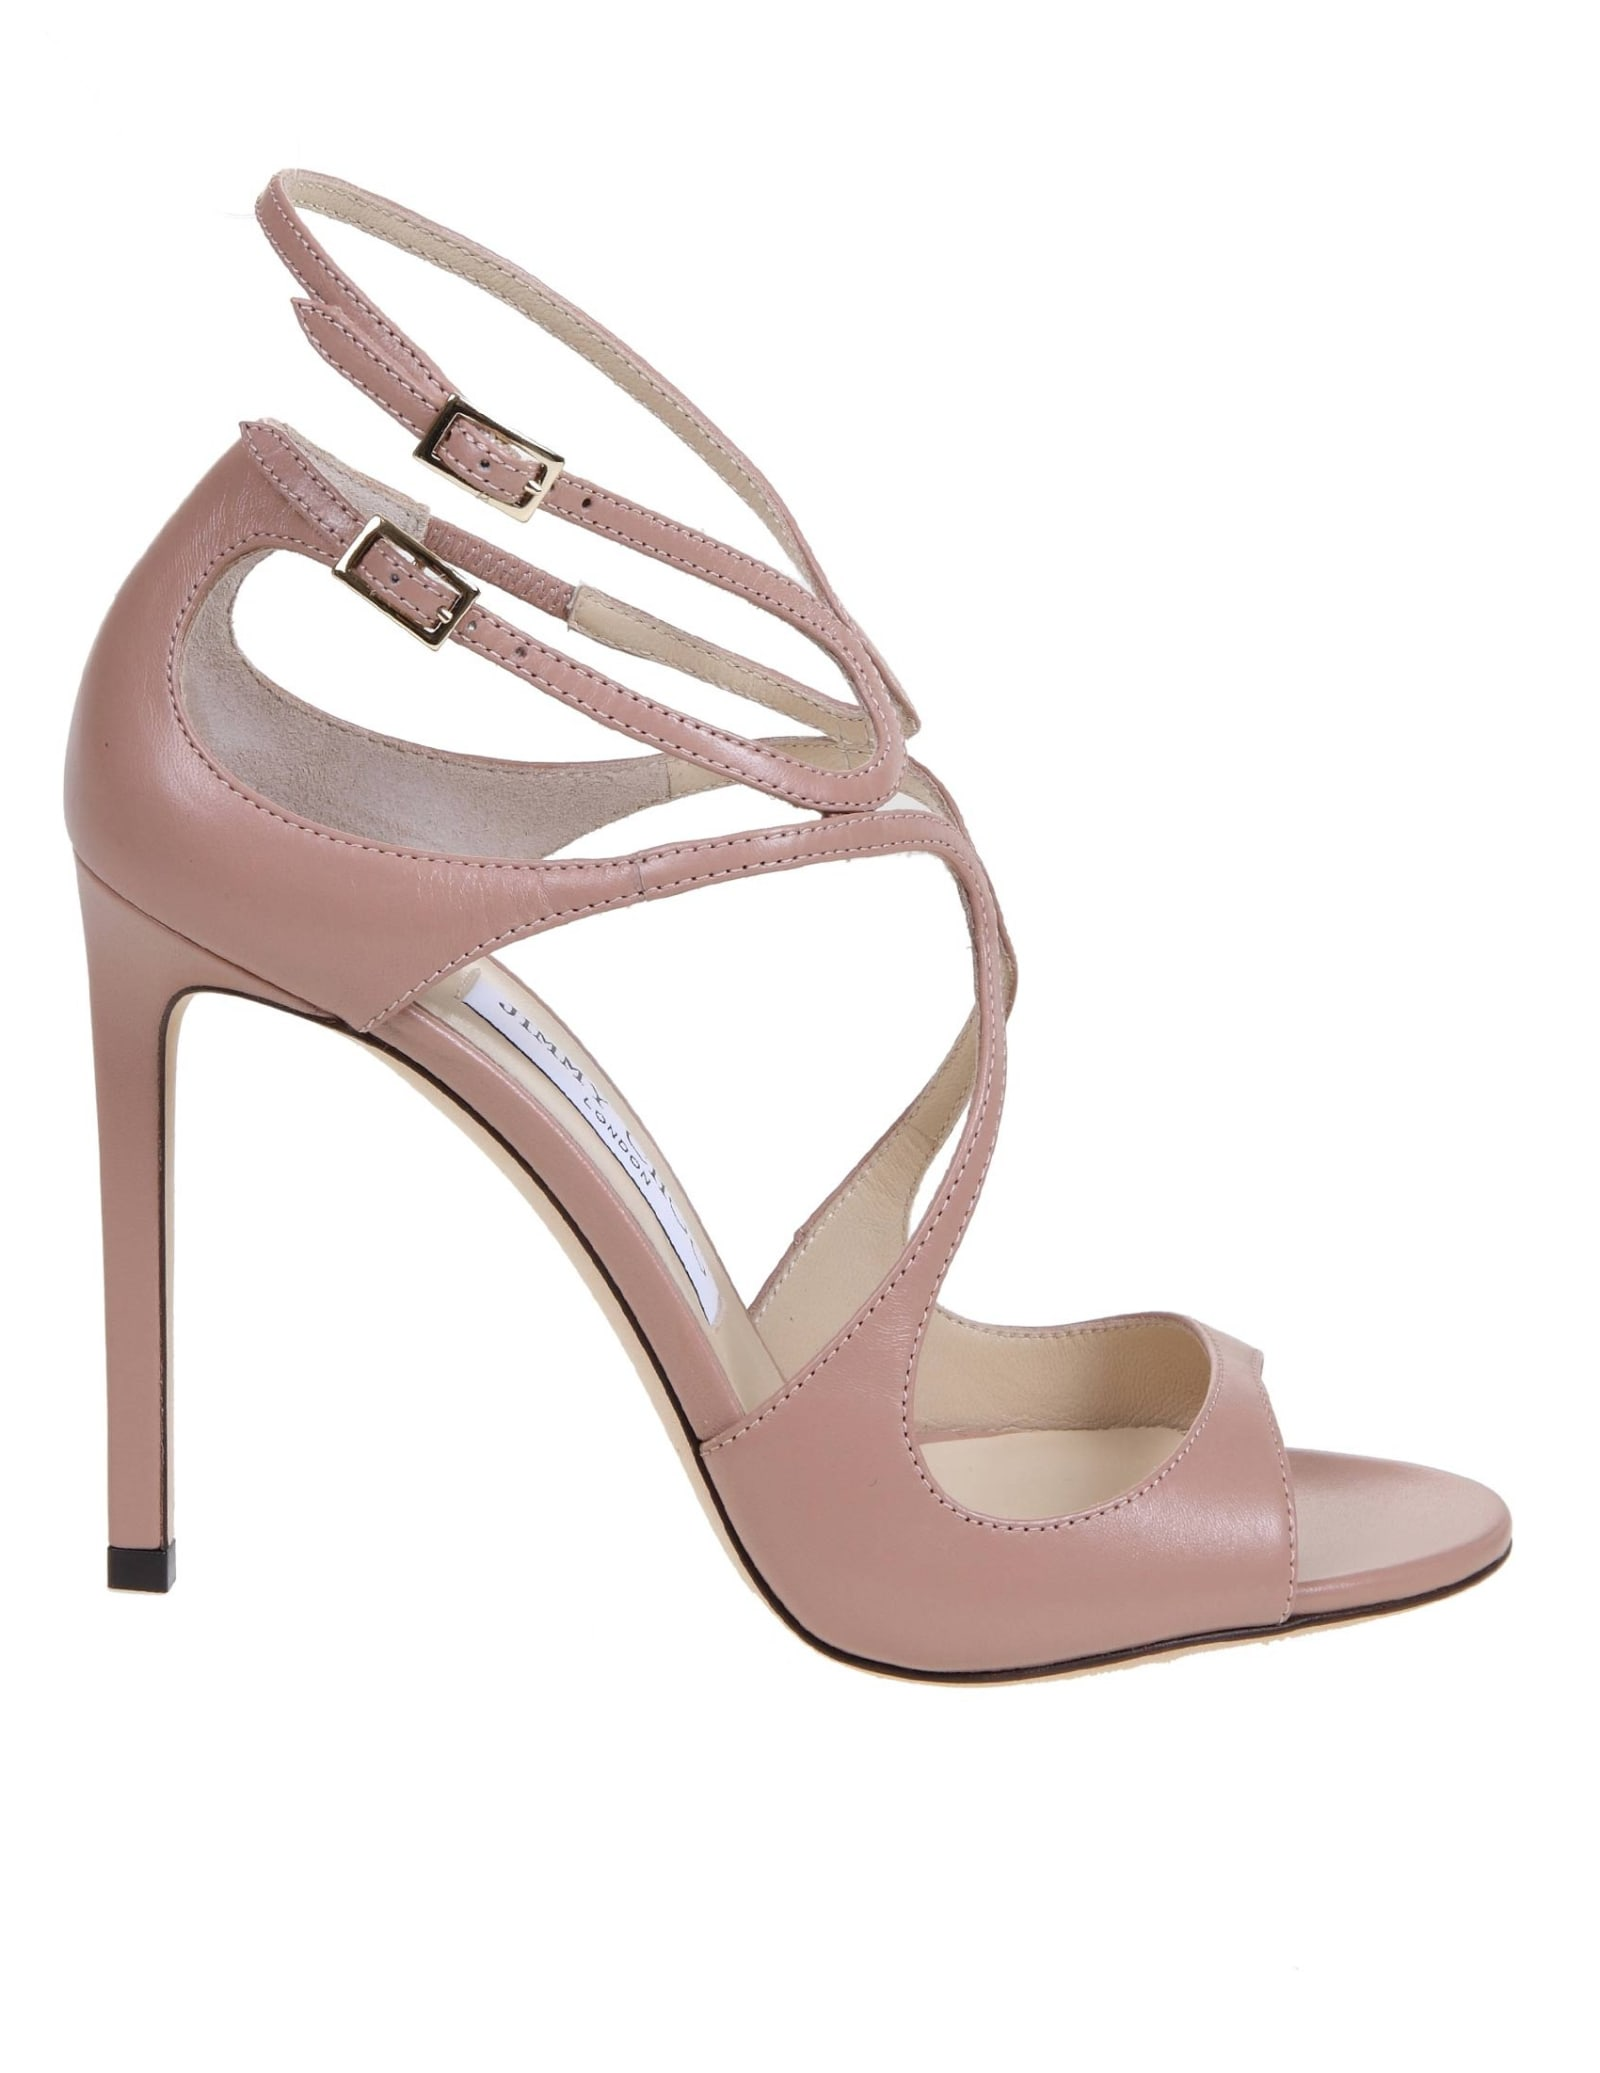 Buy Jimmy Choo Lang Nap Sandal In Antique Pink Leather online, shop Jimmy Choo shoes with free shipping